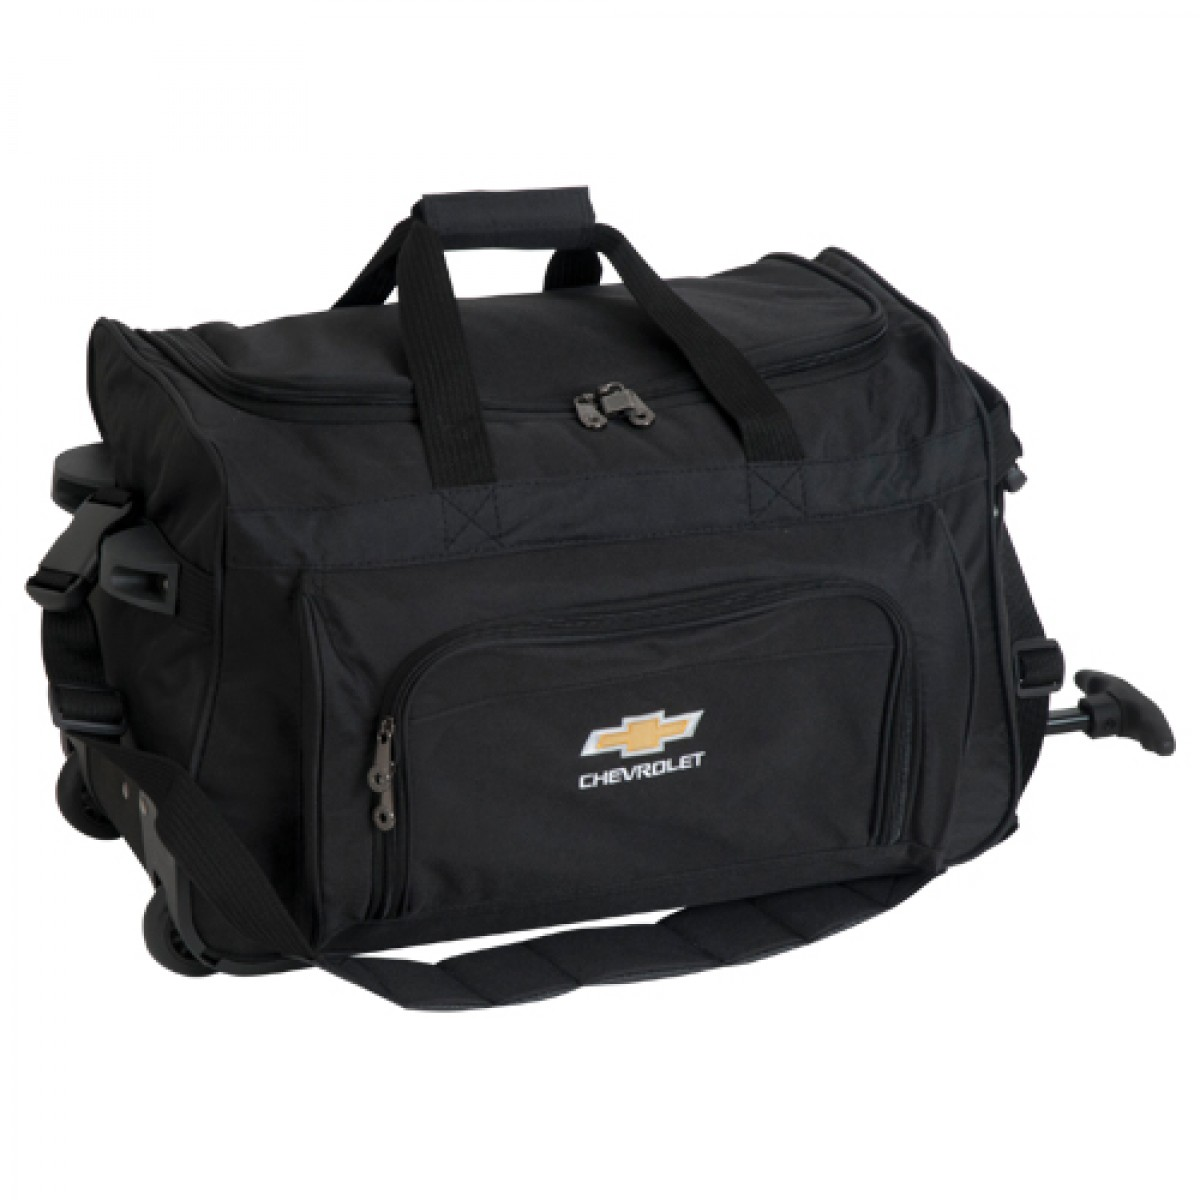 579444b53778 Chevrolet Vanguard Rolling Duffel Bag with Gold Bowtie